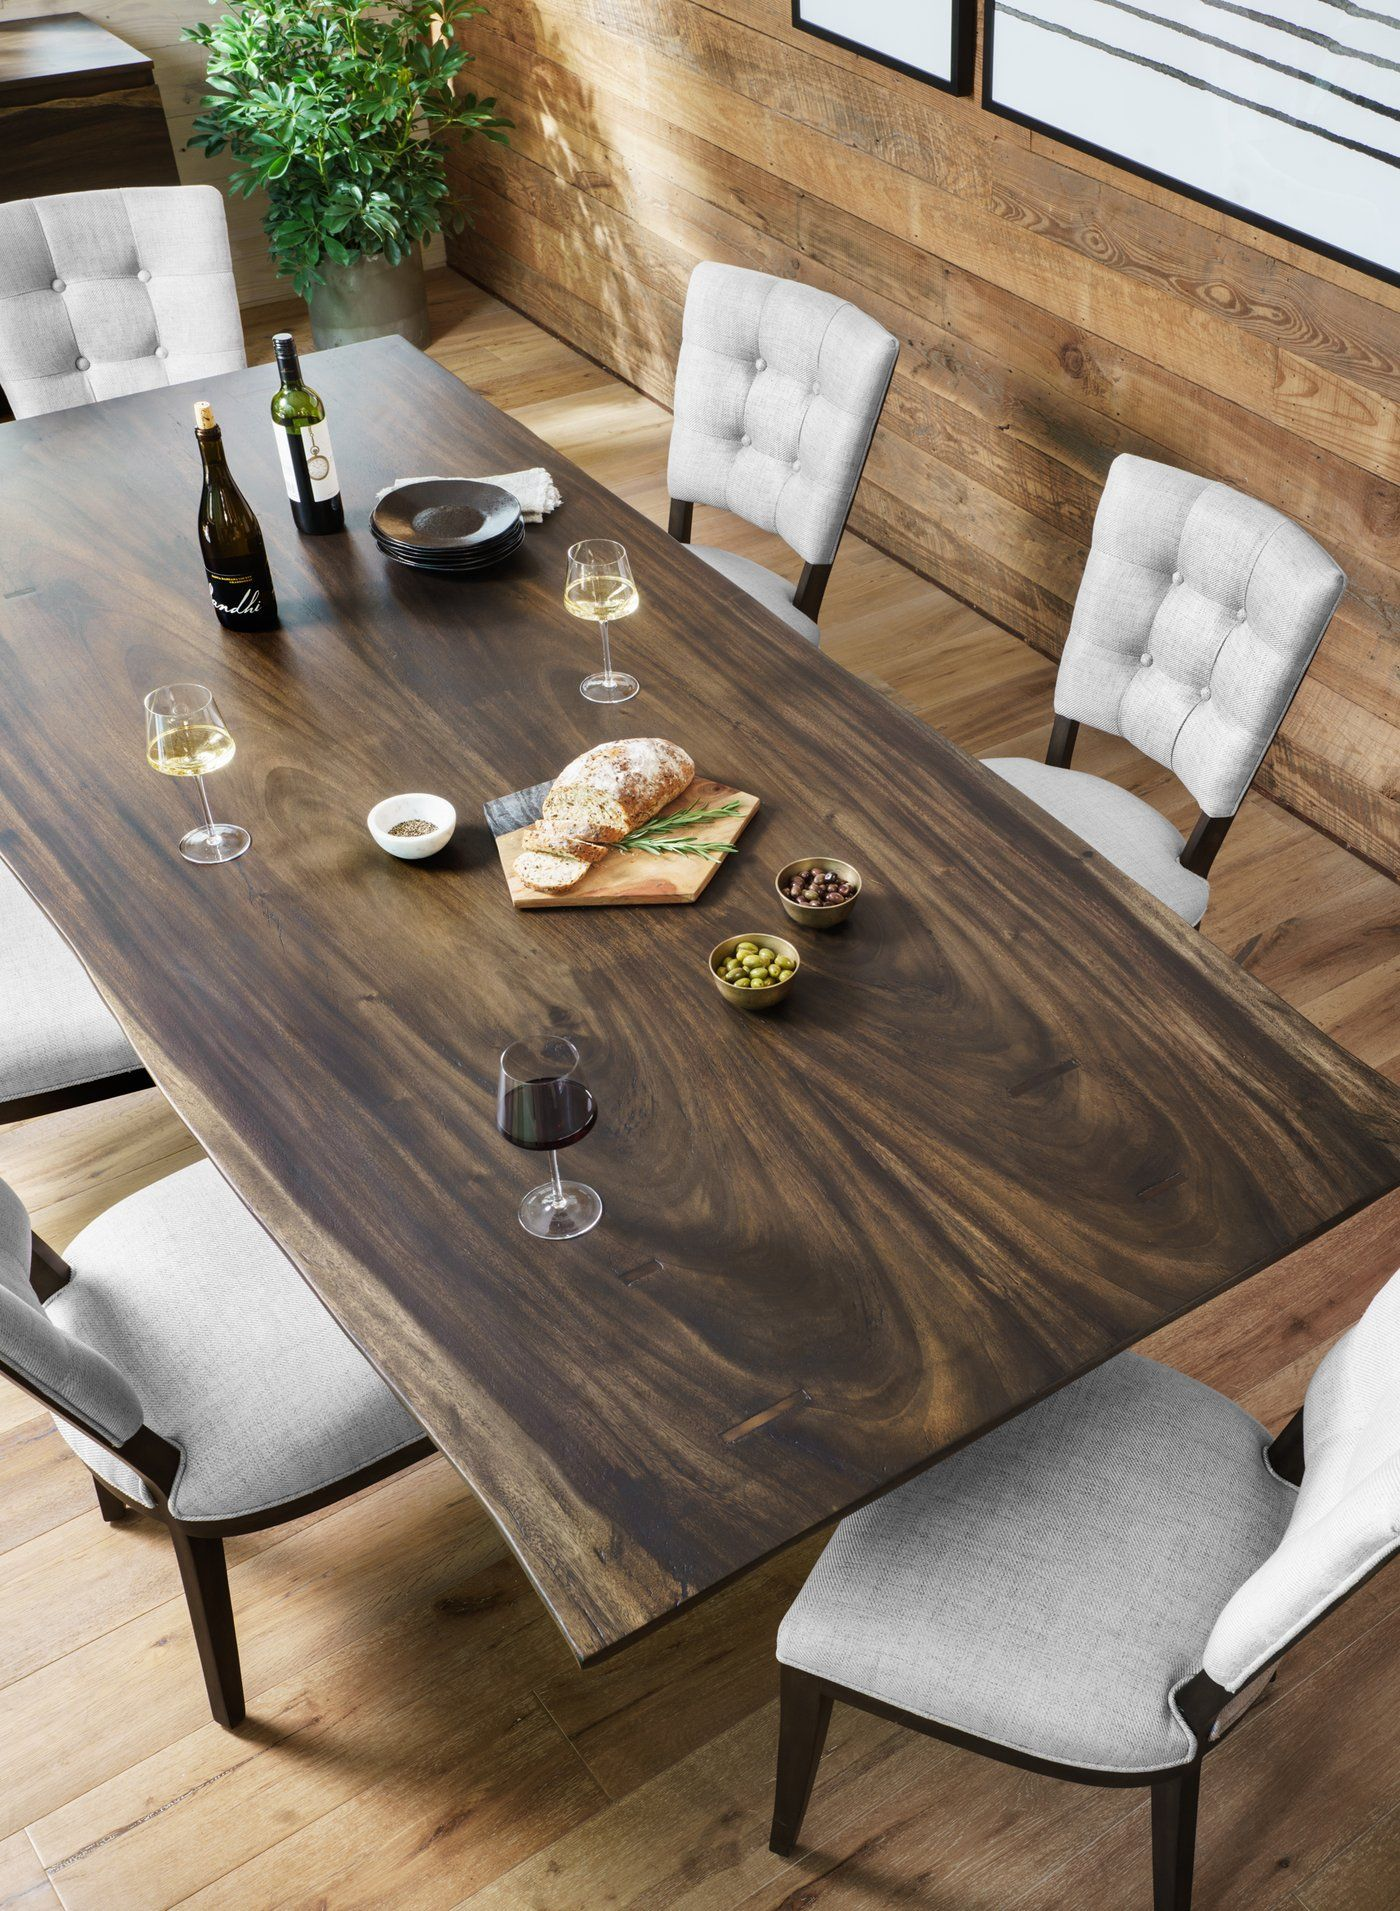 2d4856cfdd04b The Rocky Dining Table from Four Hands features a modern X base of iron. The